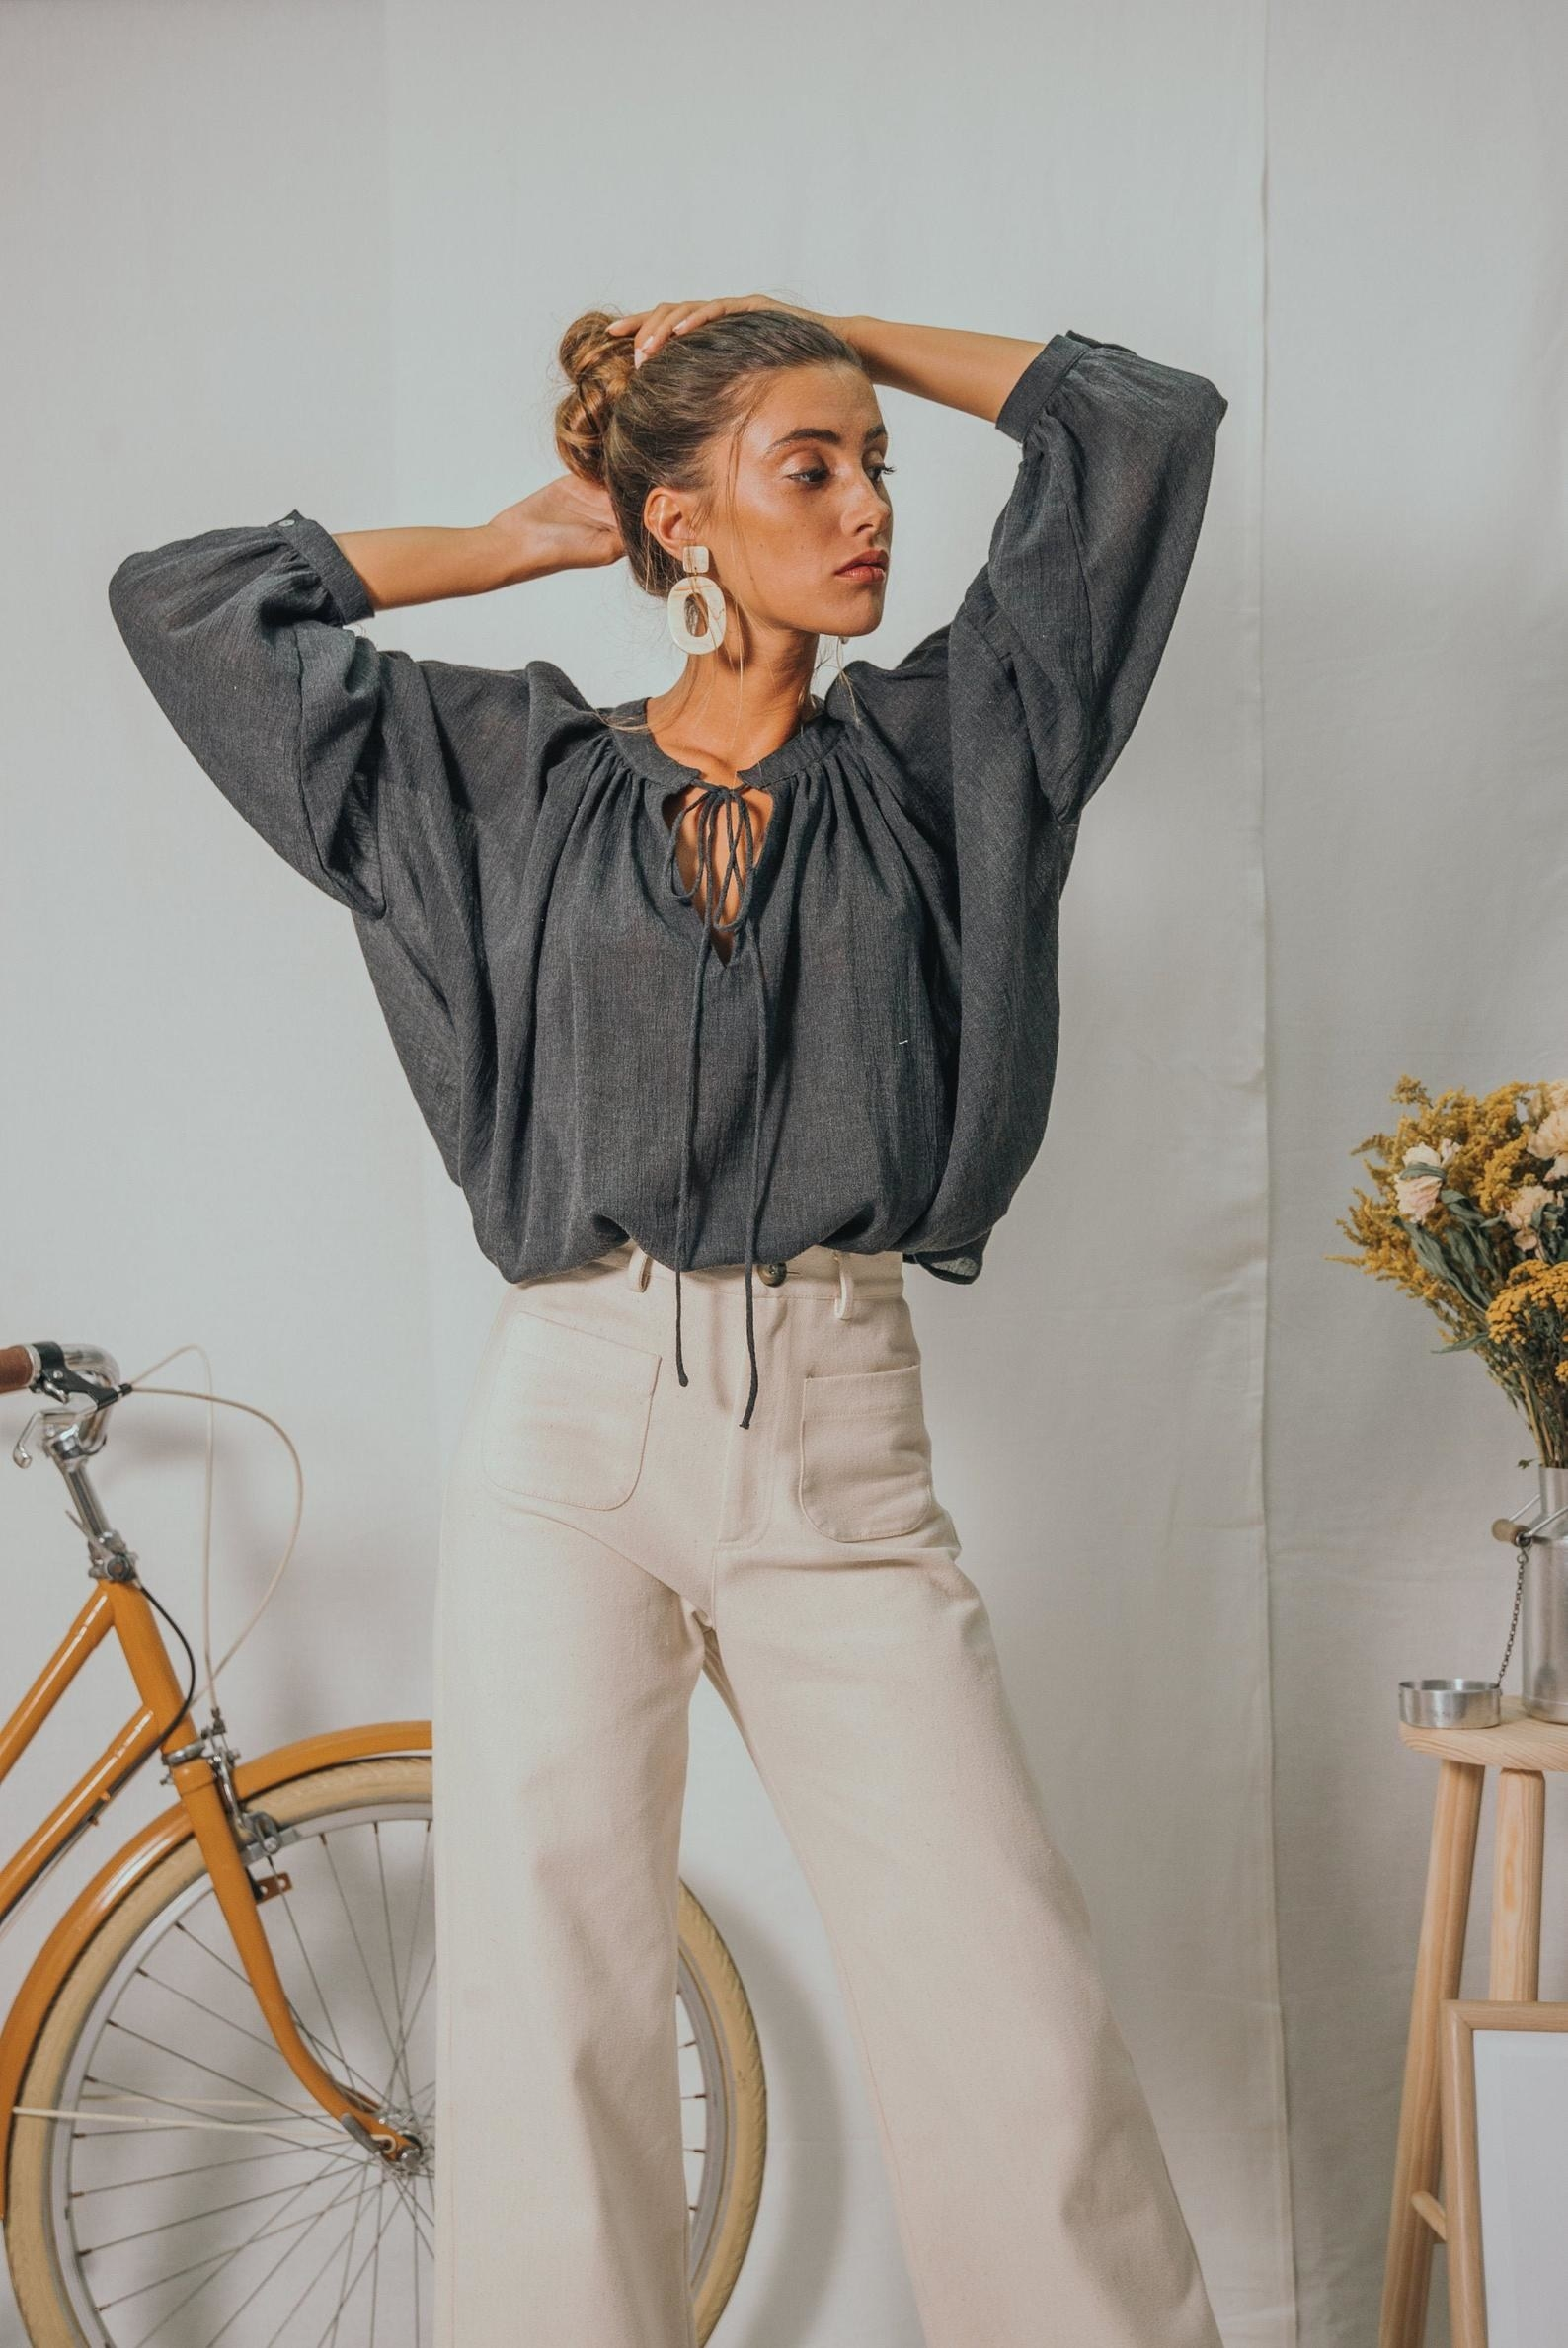 Model wearing the blouse with oversized puff long-sleeves, v-neck and tie in the middle tucked into wide-leg white pants